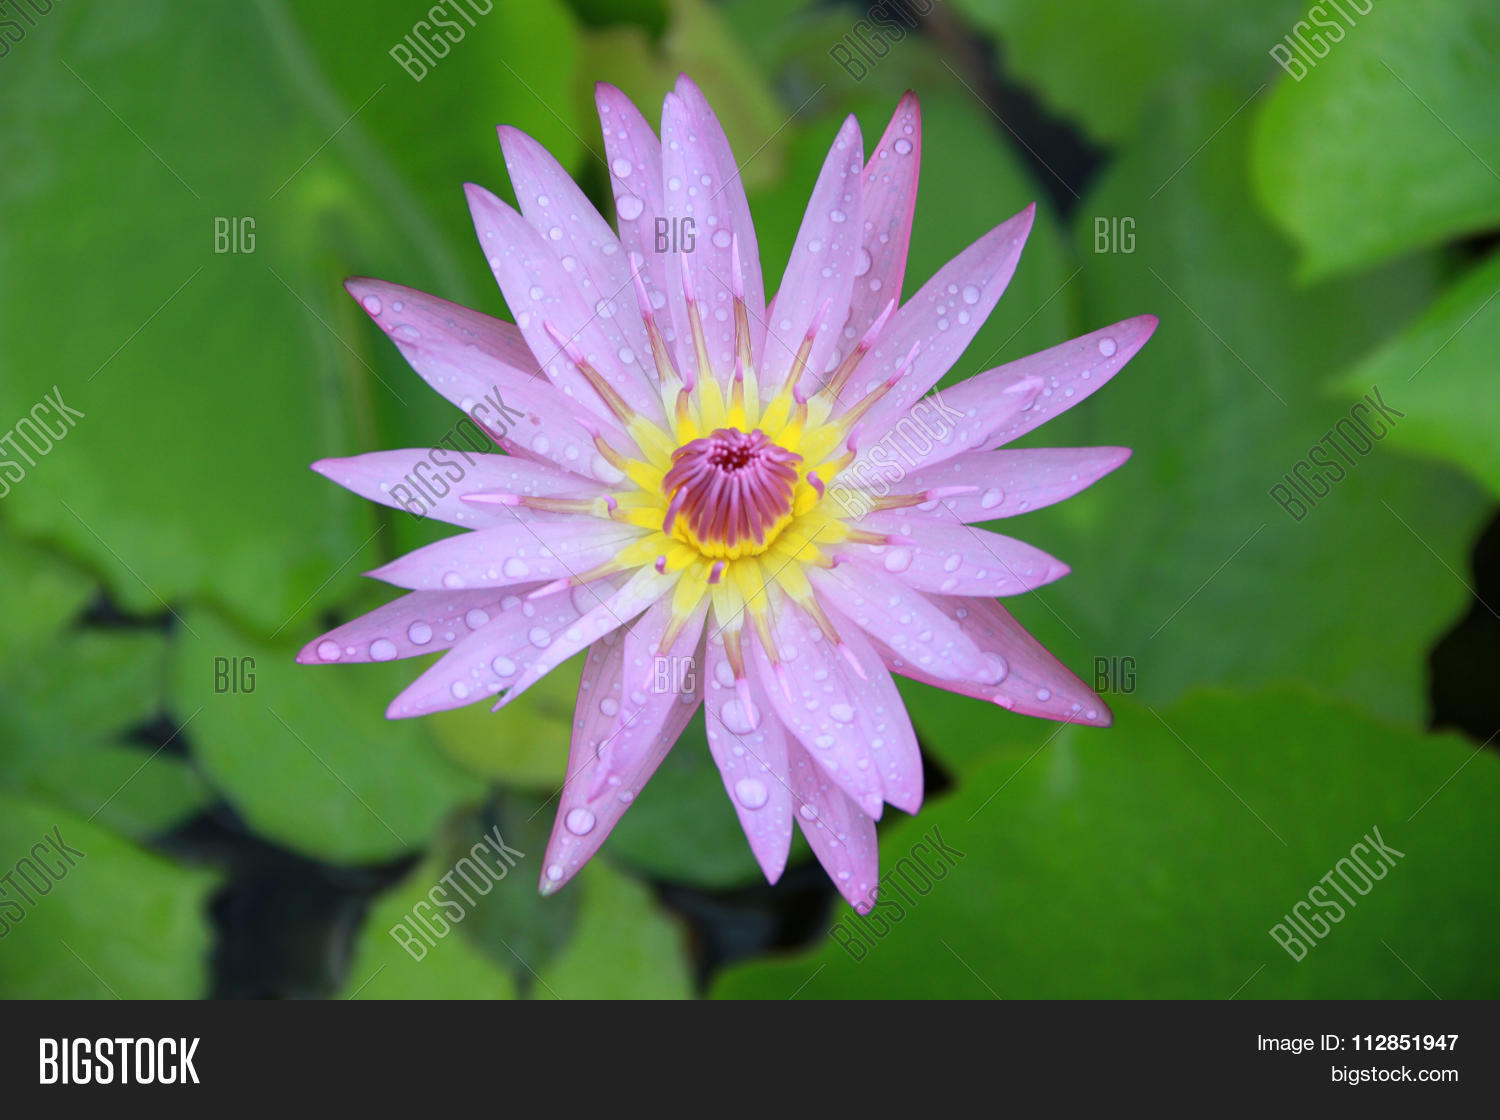 Purple lotus flower top view pool image photo bigstock purple lotus flower top view in the pool has some drop water on the petal mightylinksfo